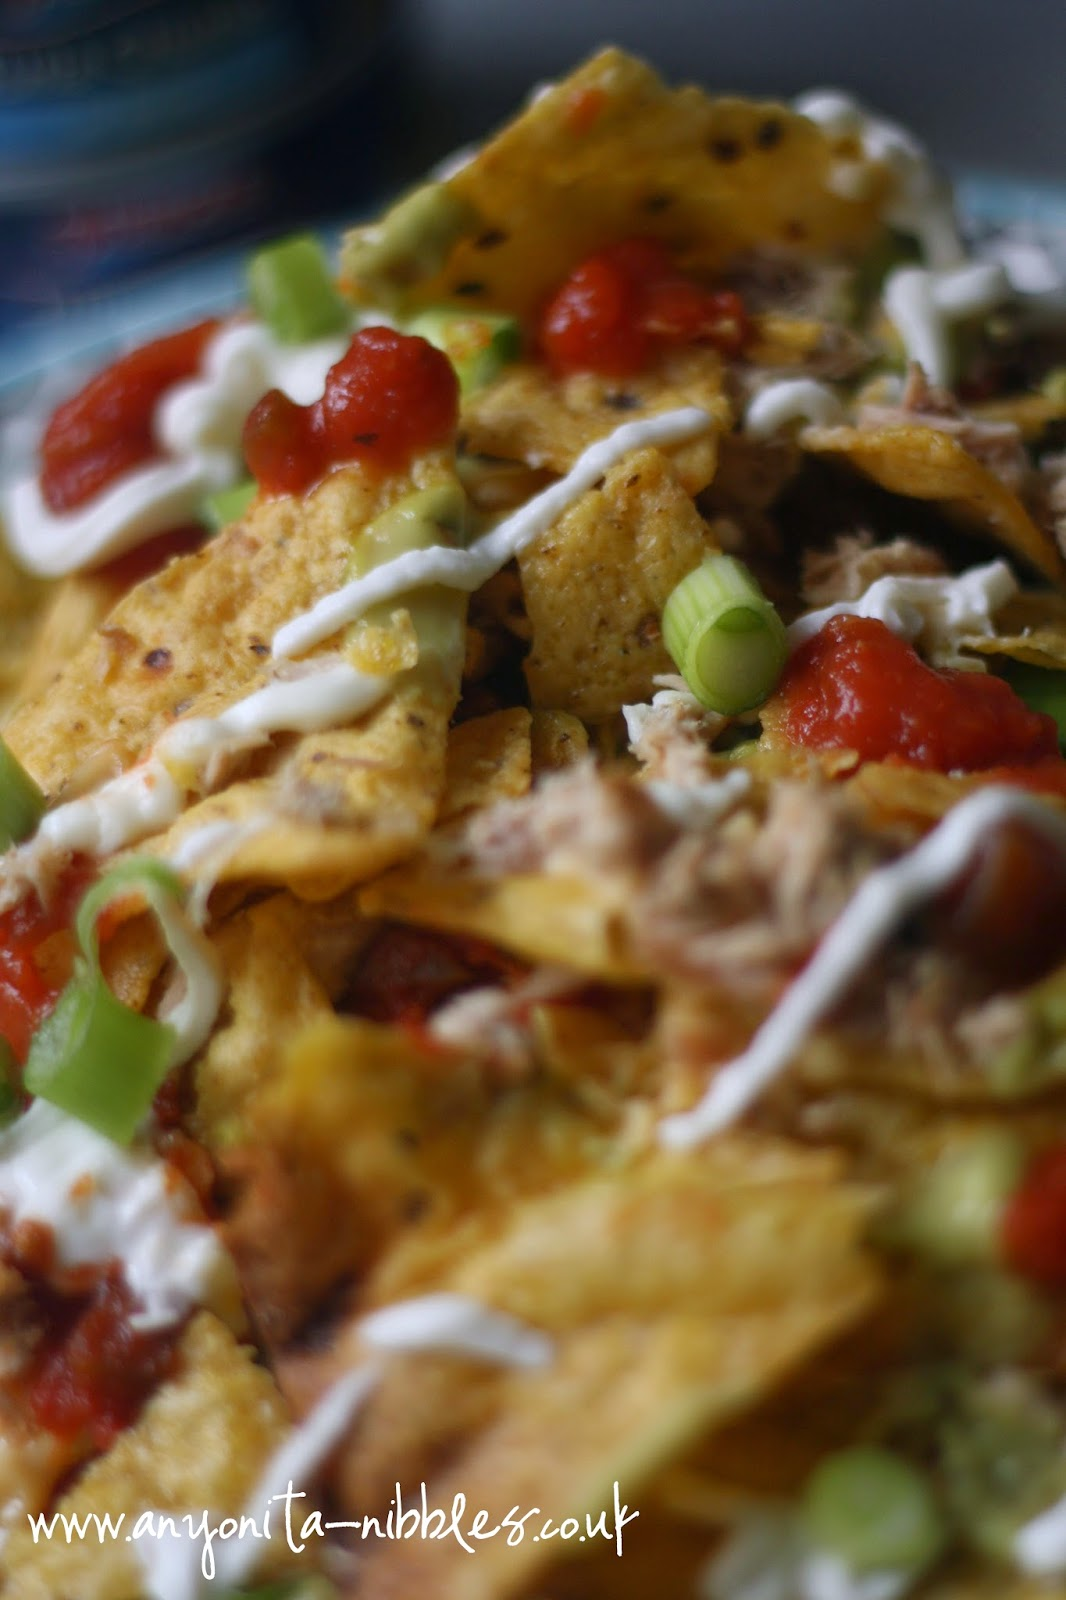 Detail of tuna nacho salad from Anyonita-nibbles.co.uk